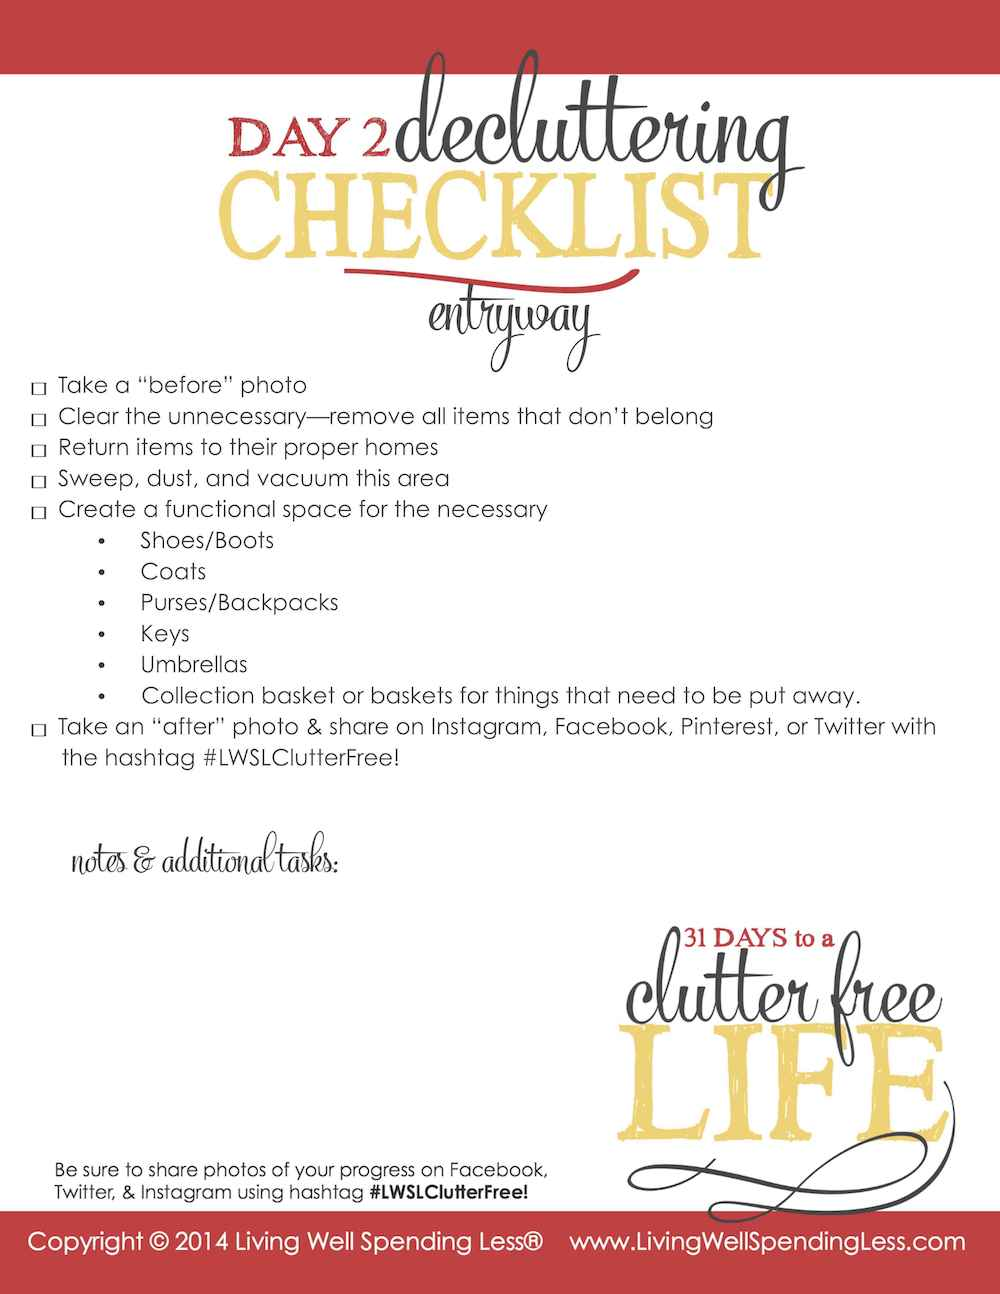 Days to a Clutter Free Life Challenge | Printable Ground Rules | Clutter Free | Home Management | Entry Way